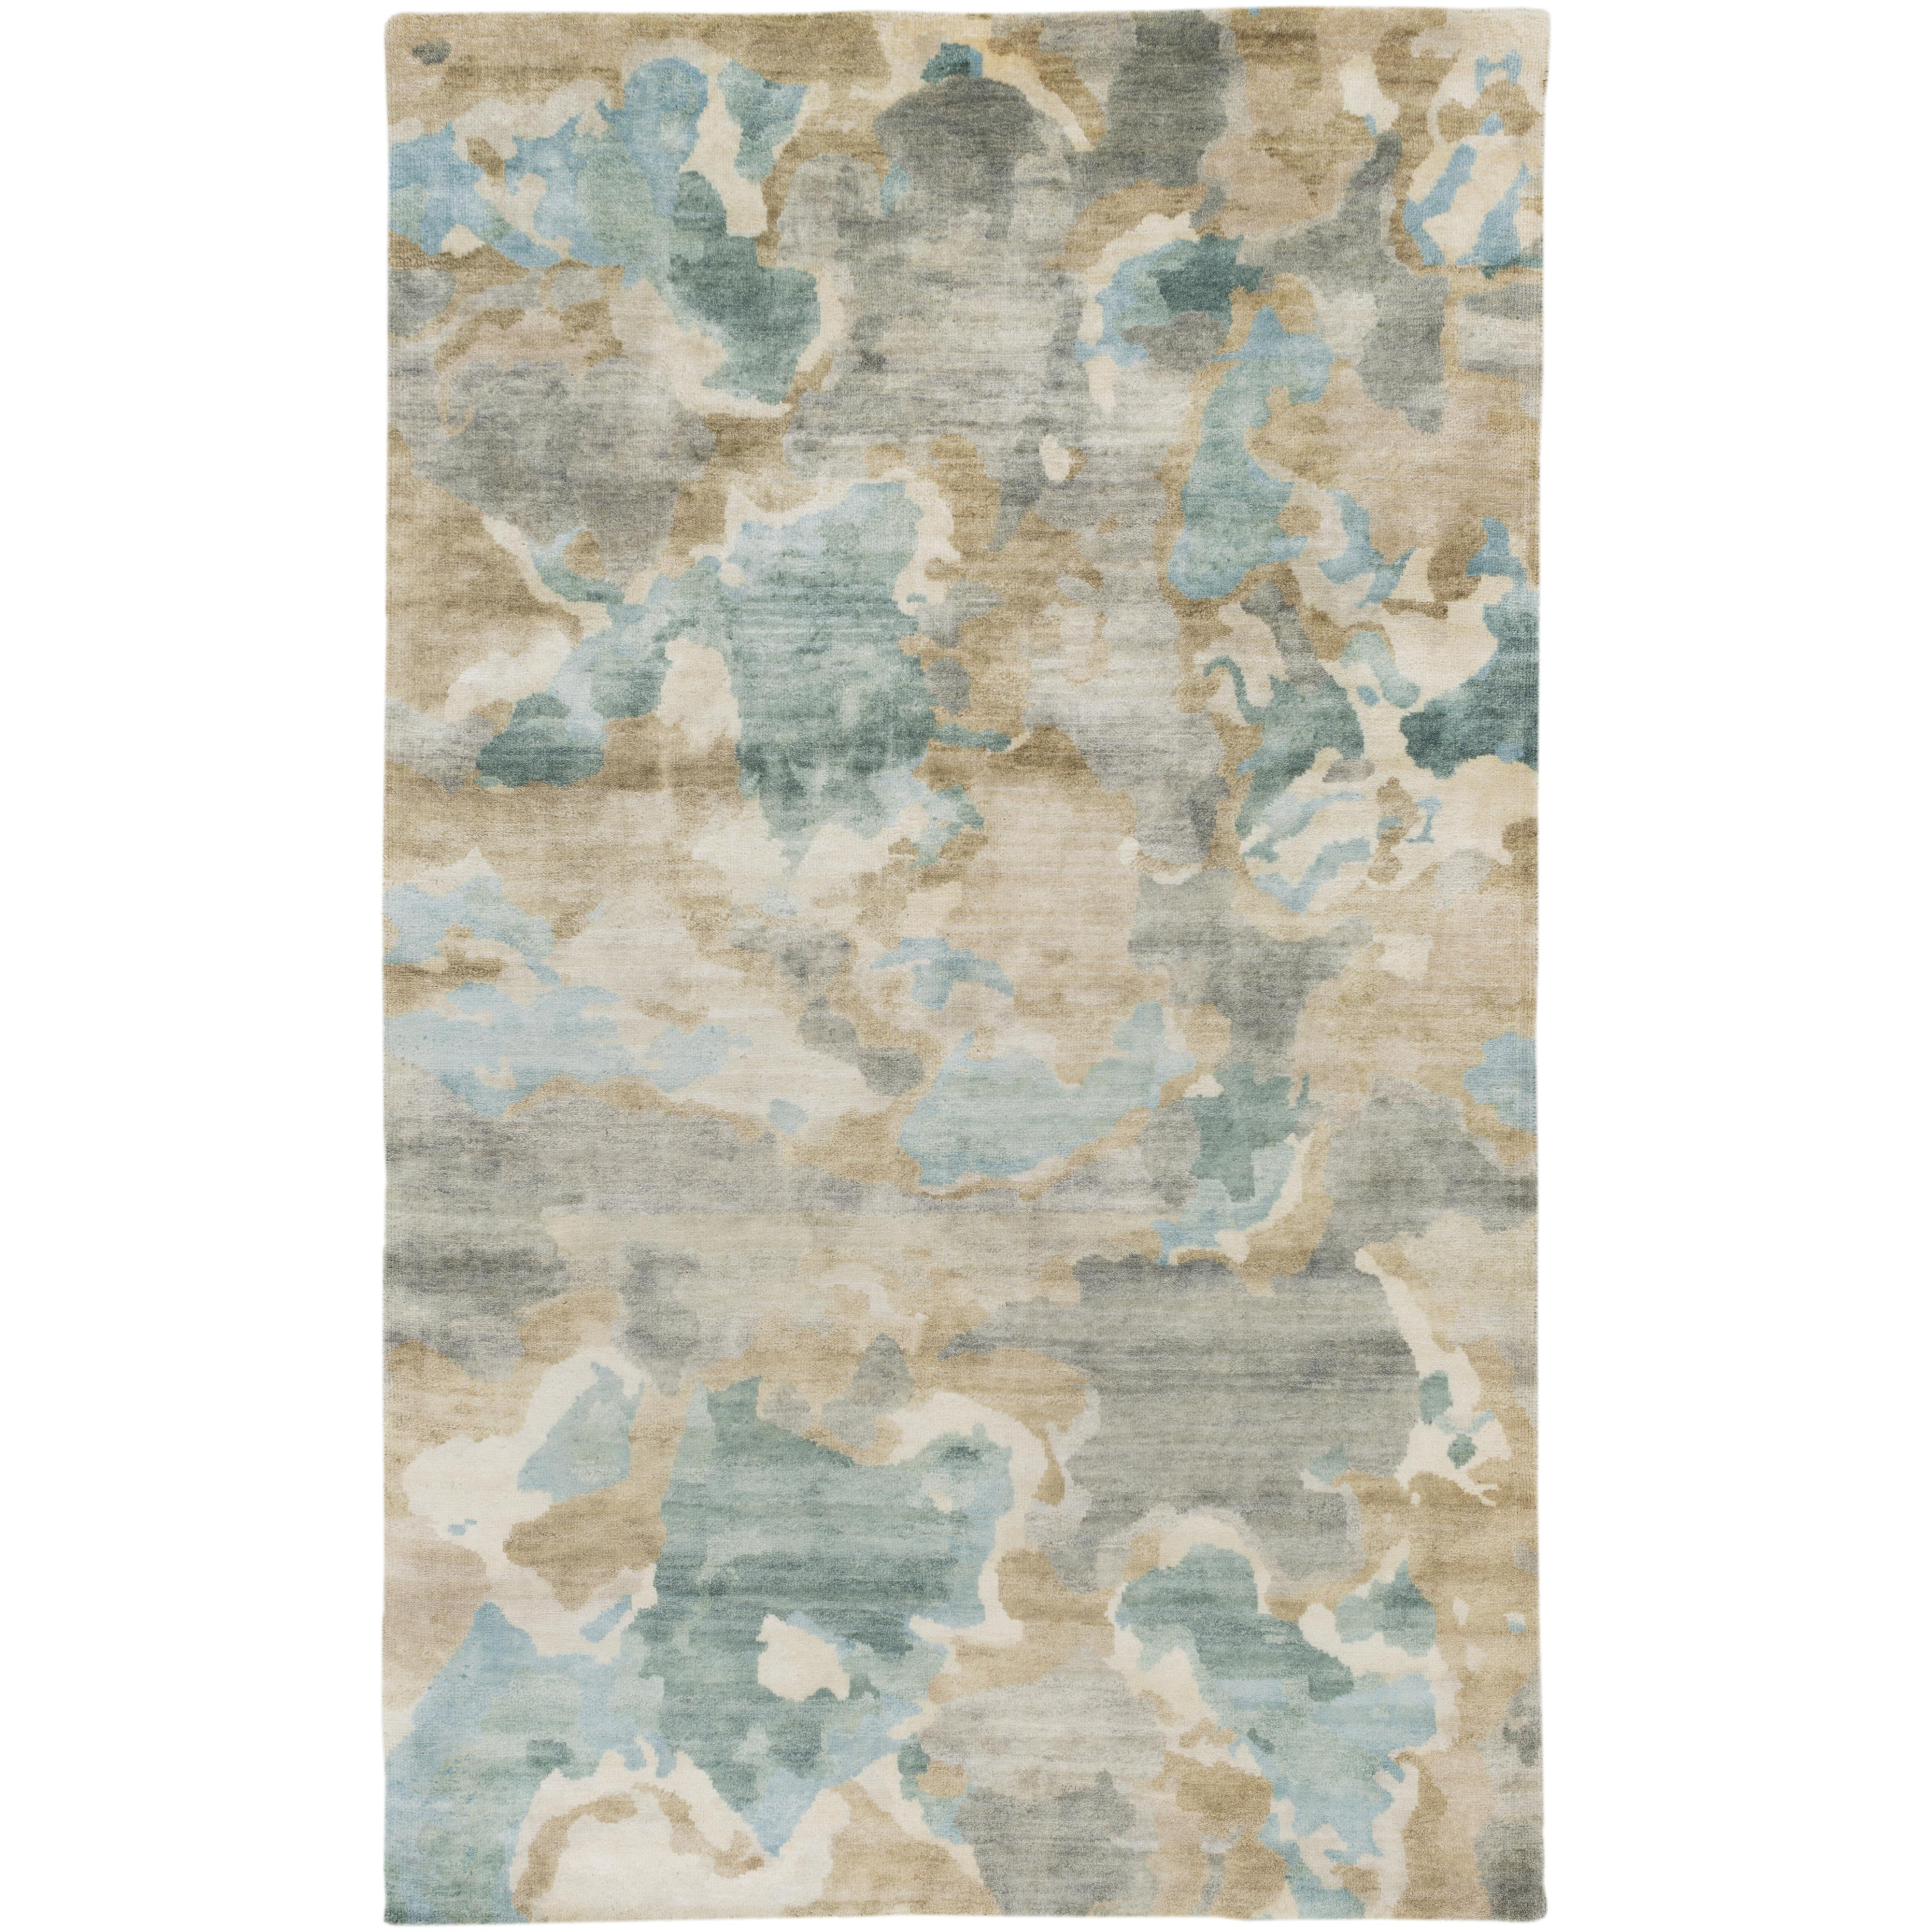 Surya Rugs Slice of Nature 9' x 13' - Item Number: SLI6407-913